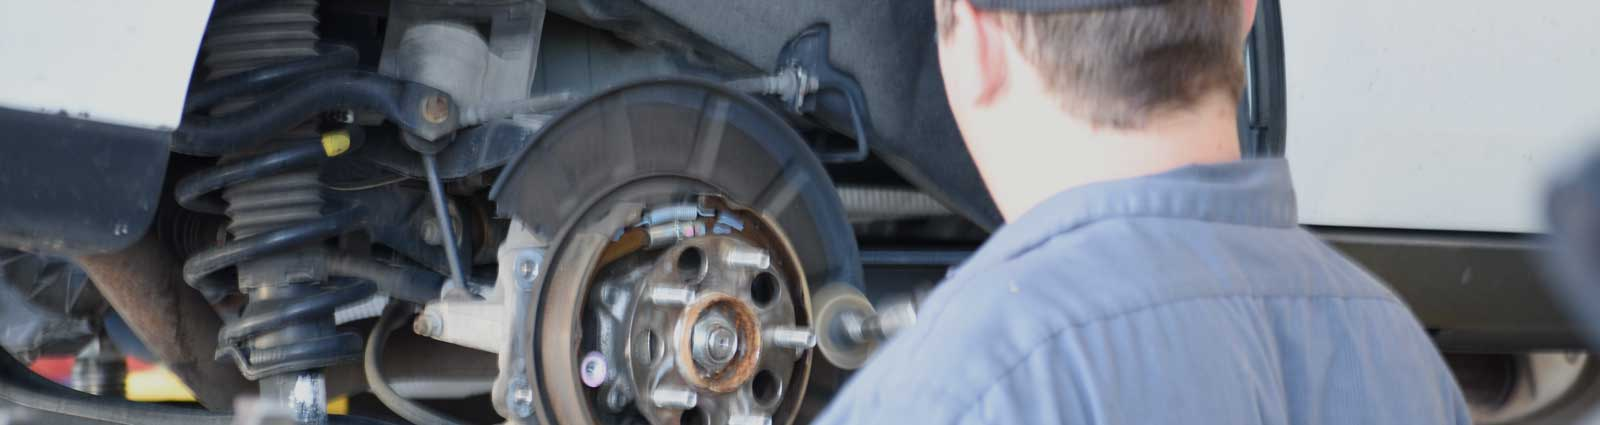 brake repair in Reno